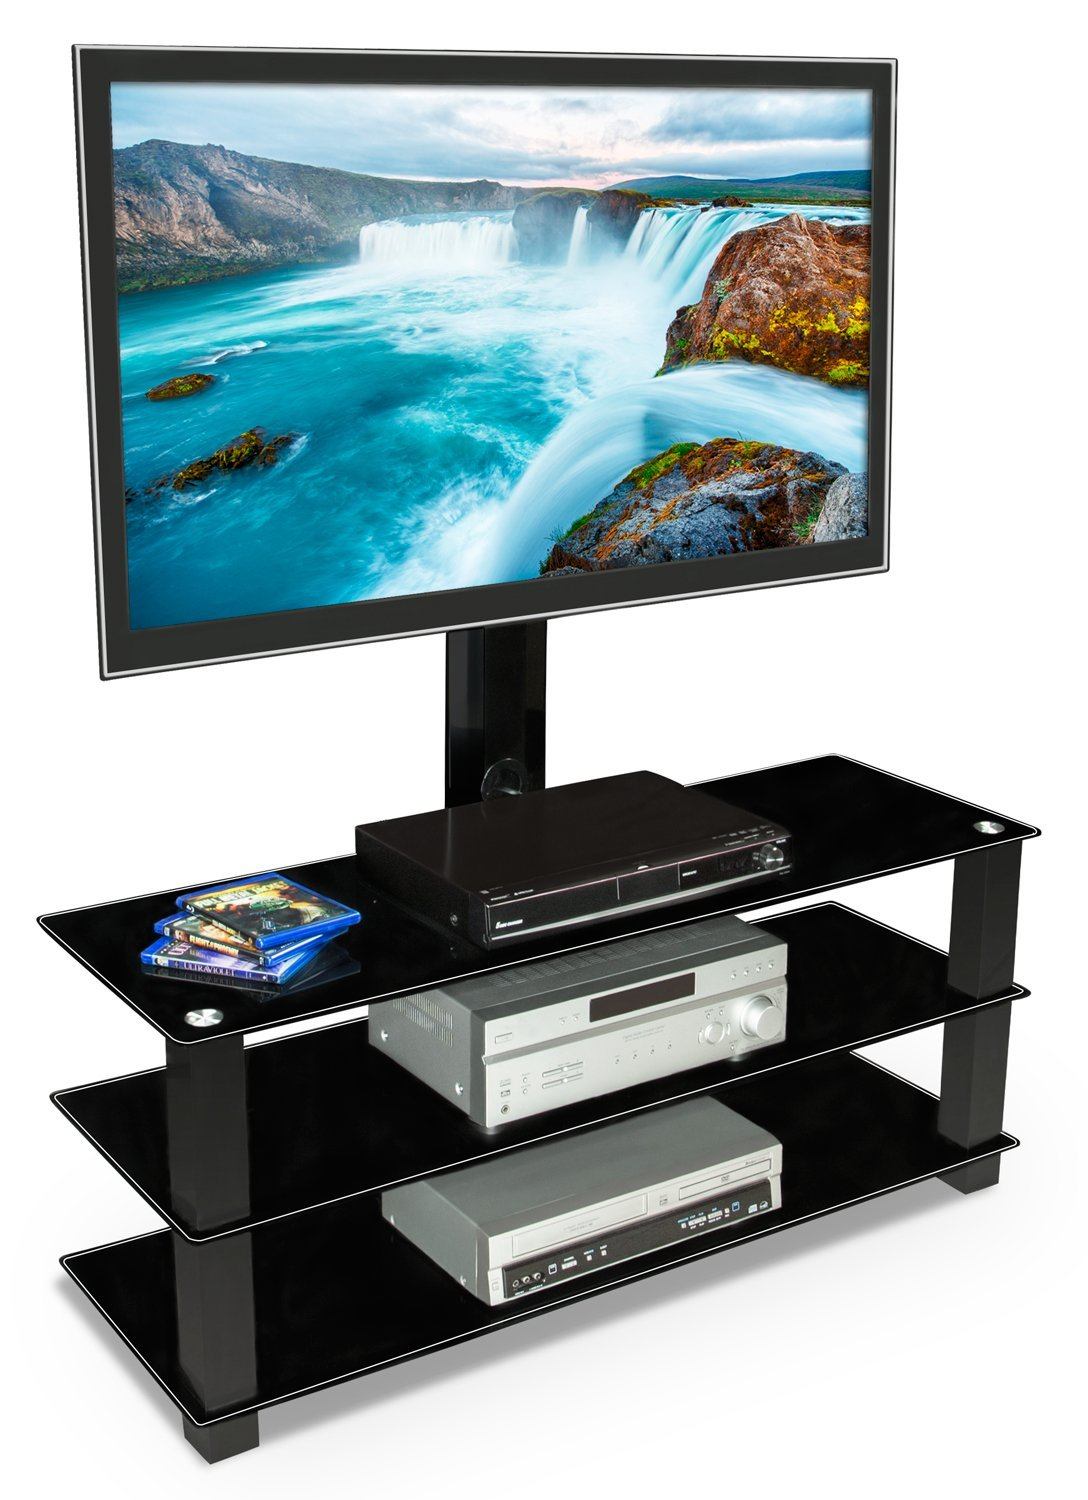 Mount it tv stand with mount entertainment center for tvs mount it tv stand with mount entertainment center for tvs between 32 to 60 inch mi 866 walmart sciox Image collections